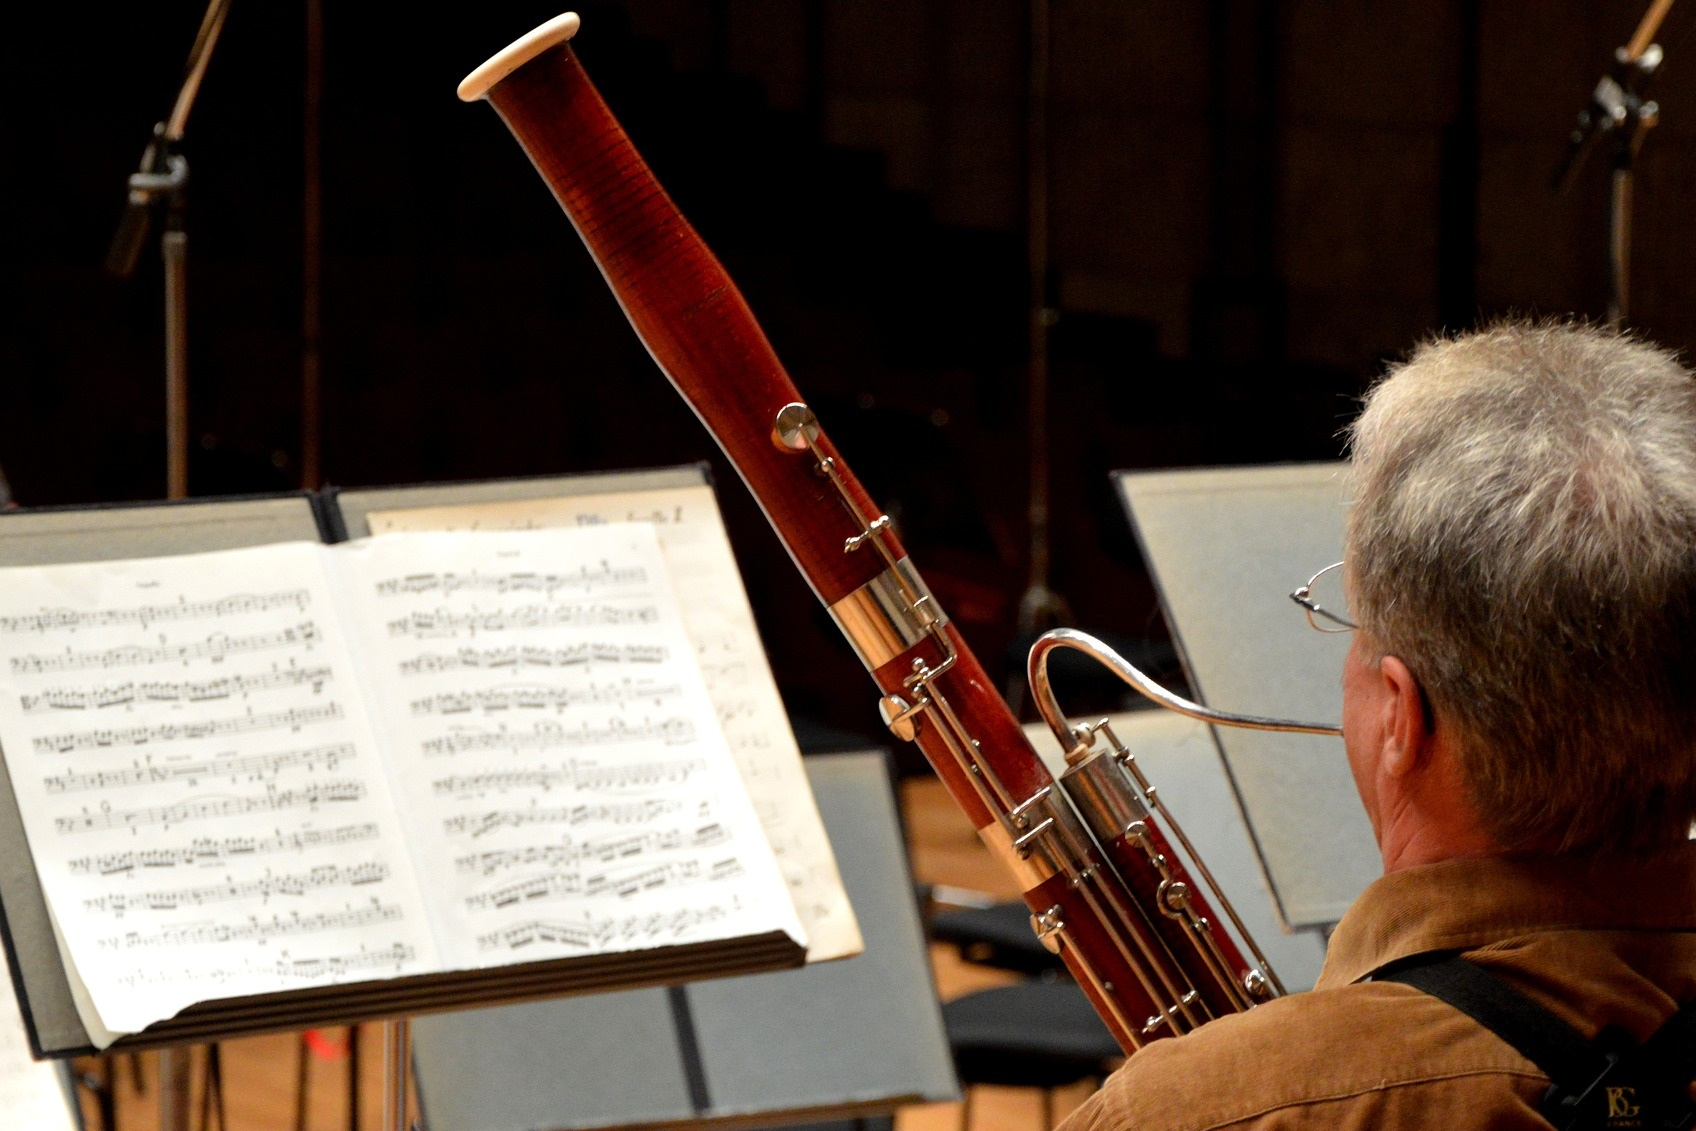 """Bassoon & Contrabassoon - Bassoon's also got a double reed (a bigger one), but the body of the instrument is MUCH larger. Bassoon is played off to the side like a saxophone, and looks like a brown or reddish big long stick with a hole up at the top that the player plays into the middle of. The CONTRABASSOON is just a bigger version, with more wooden """"piping"""" wrapped around, and it sounds super frickin' low. The bassoon sounds vibrate-y – a bit like a duck, or an electronic sound, but in a really good way."""